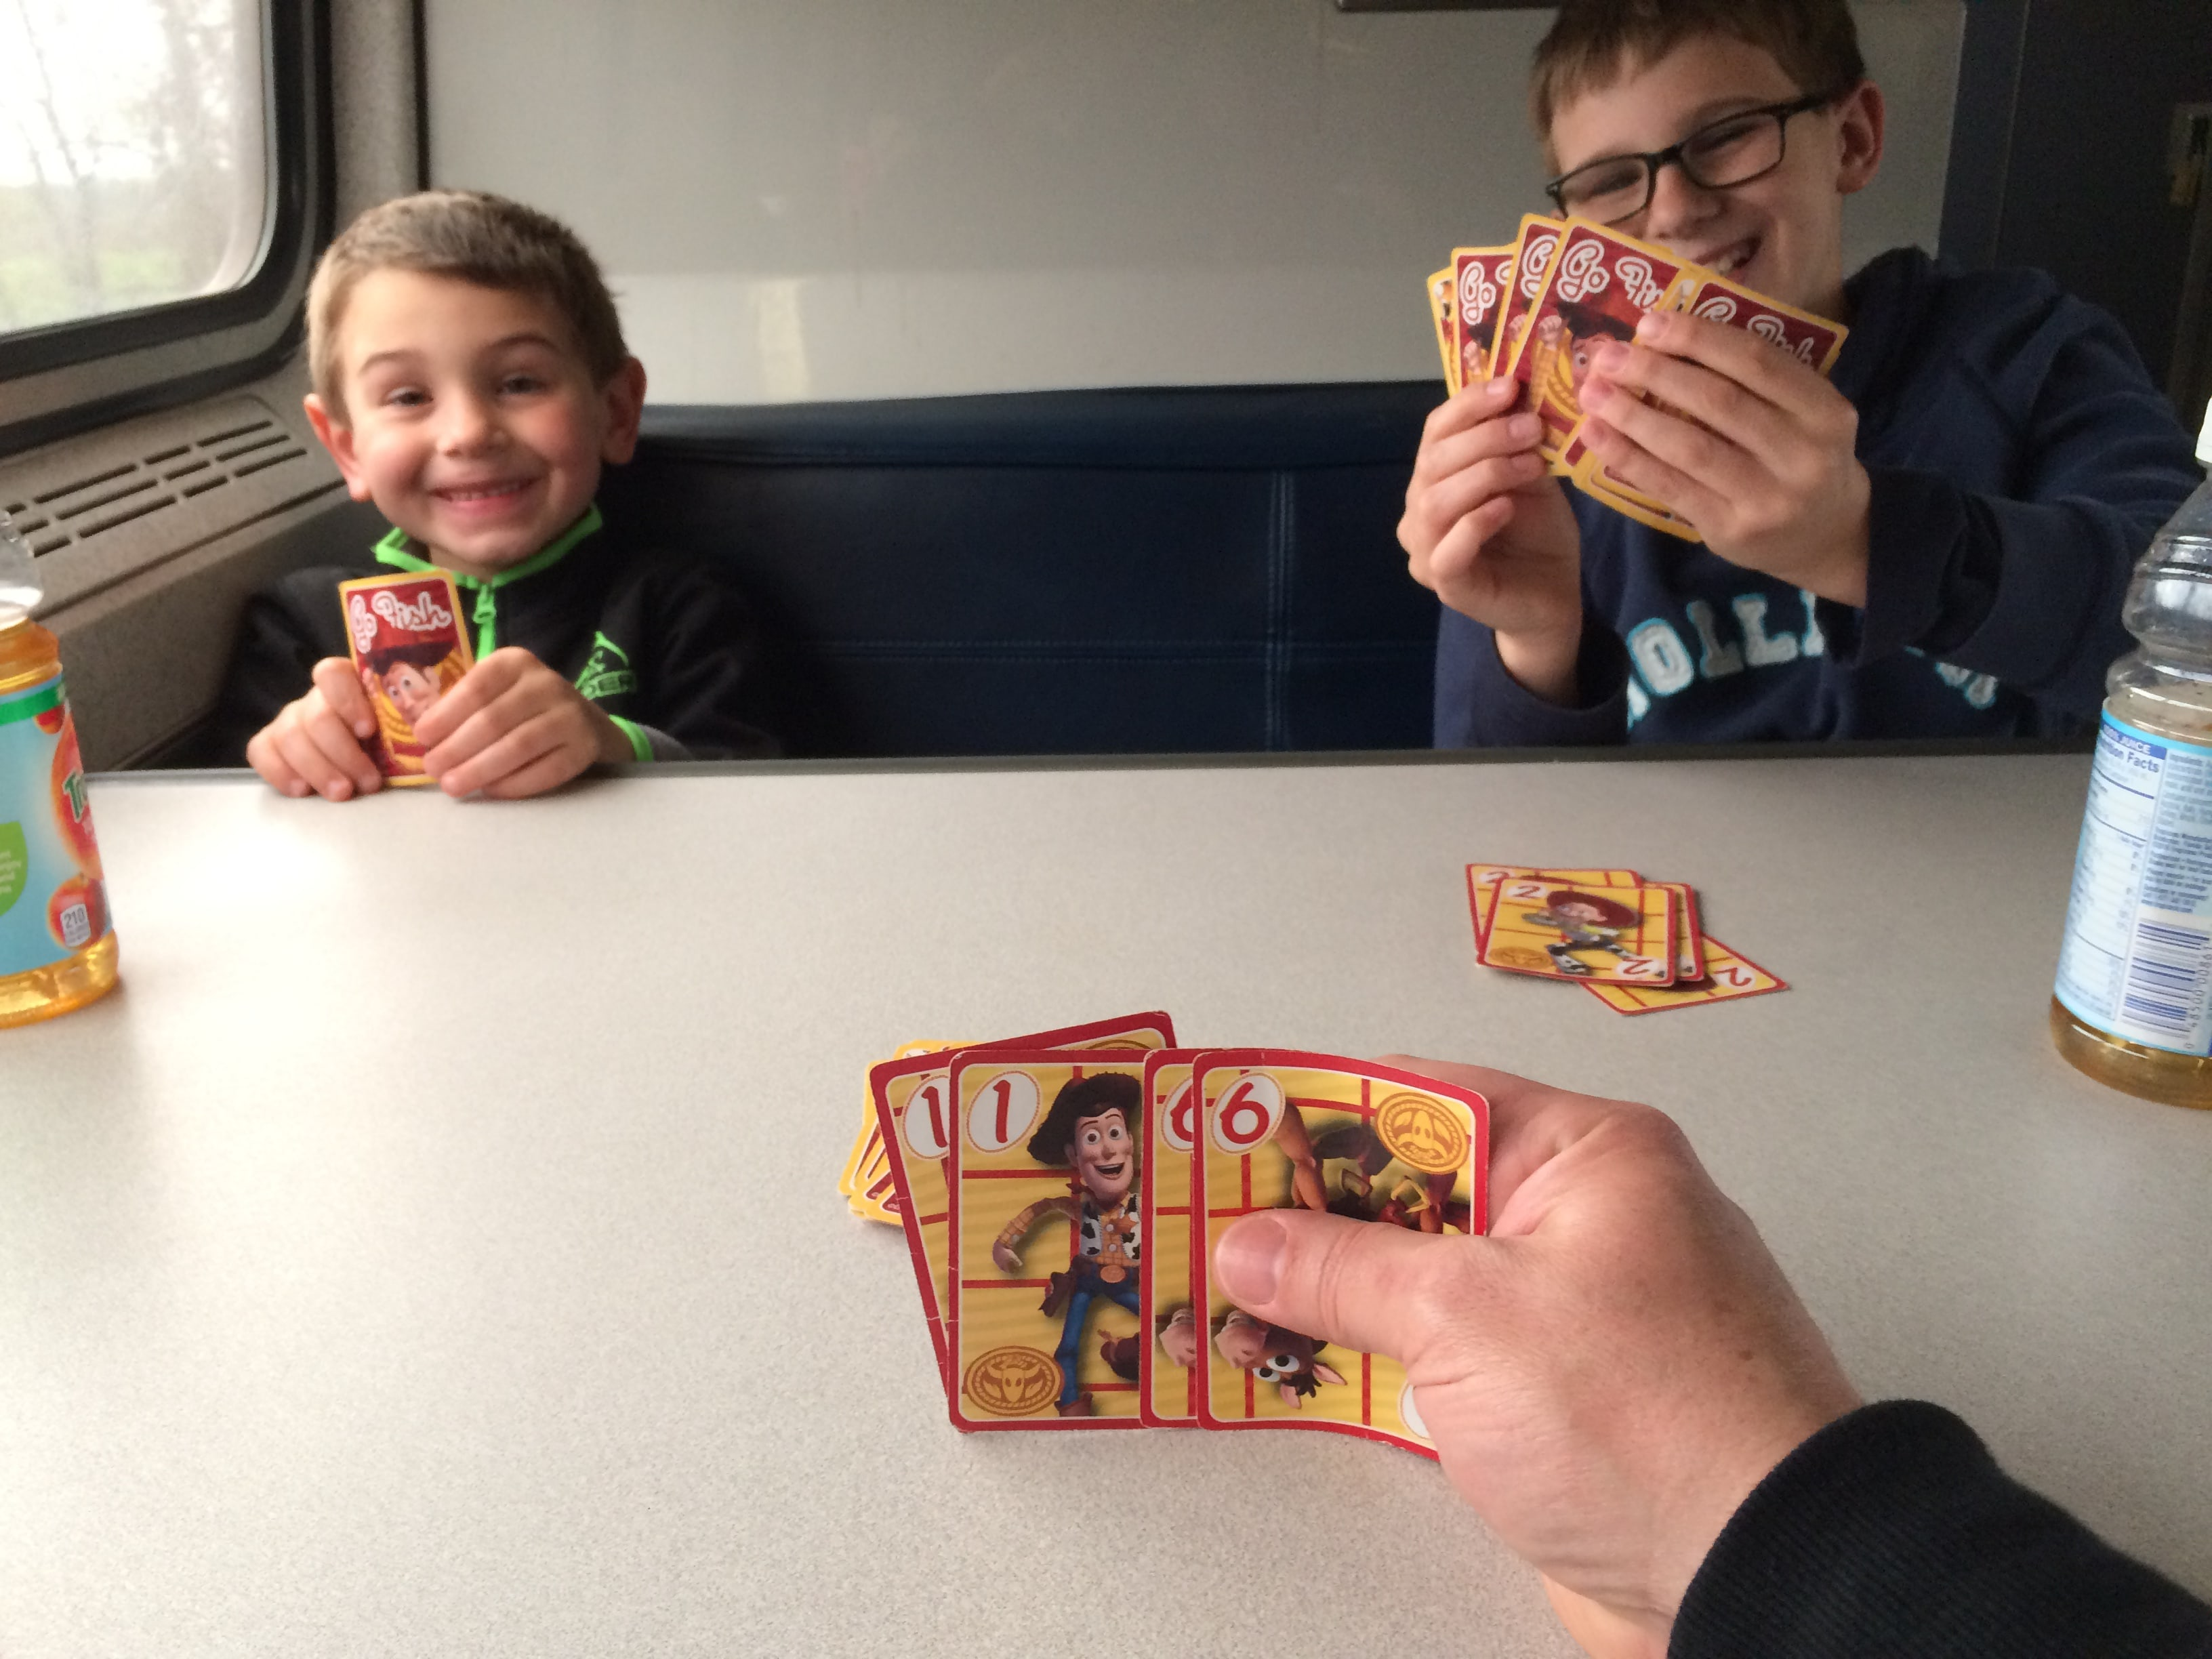 Playing card games in dining car of Amtrak train